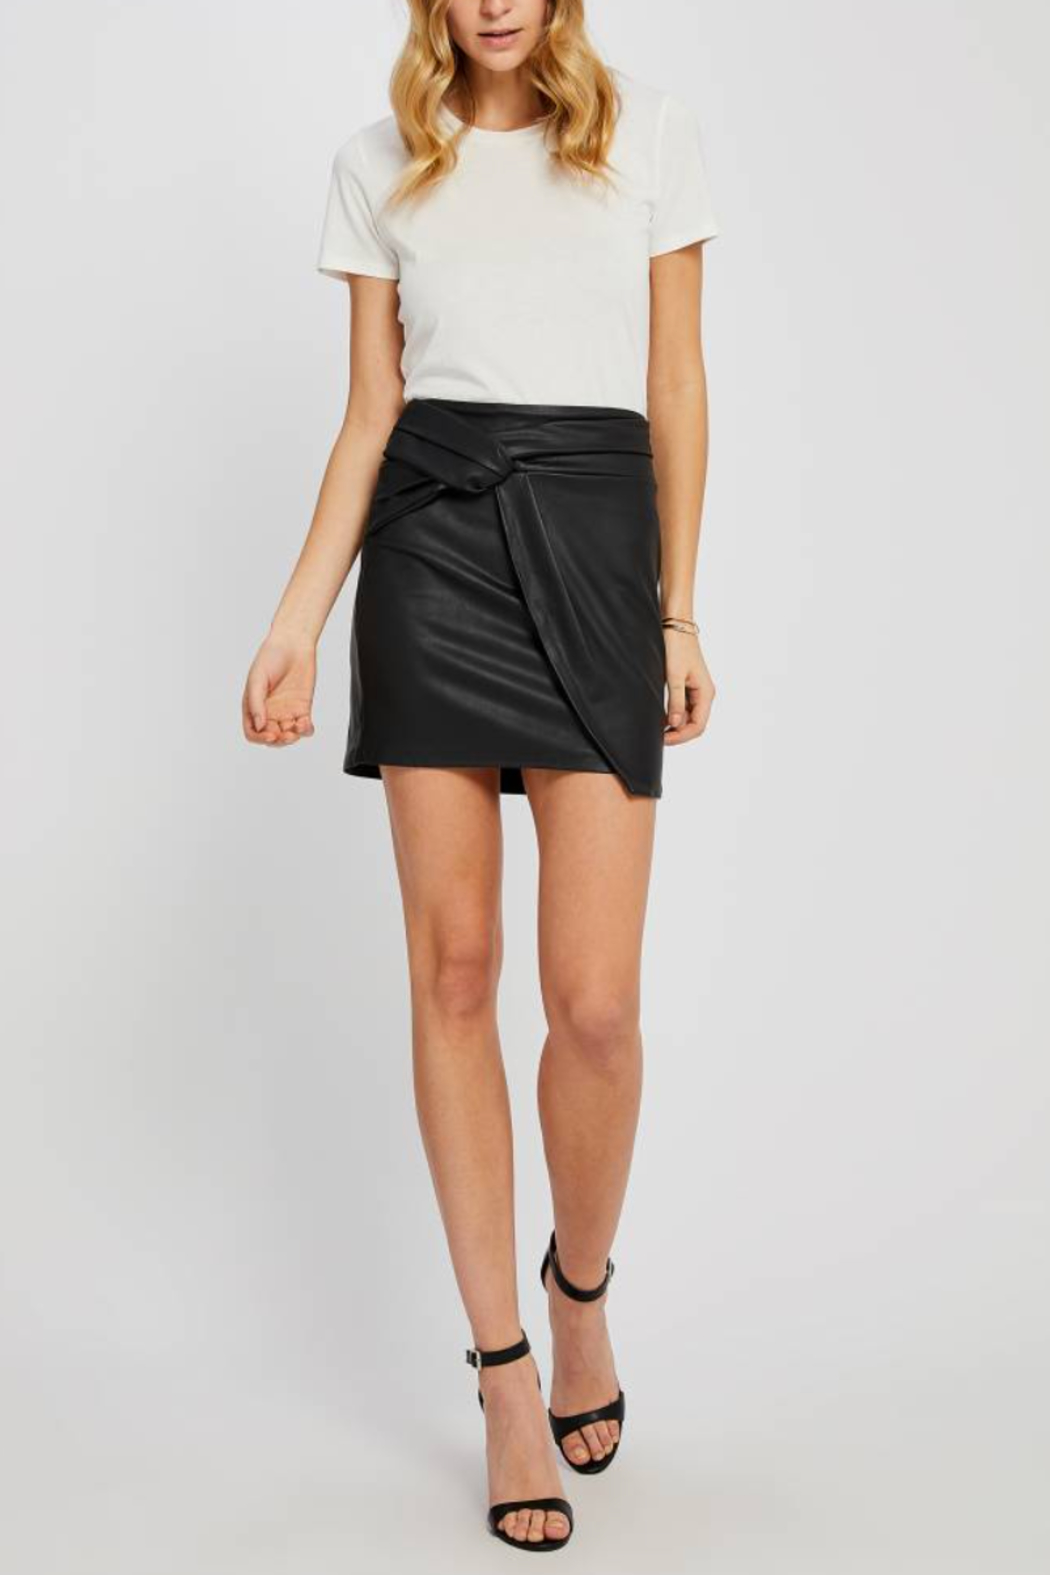 Gentle Fawn Maquinna Faux Leather Skirt - Main Image